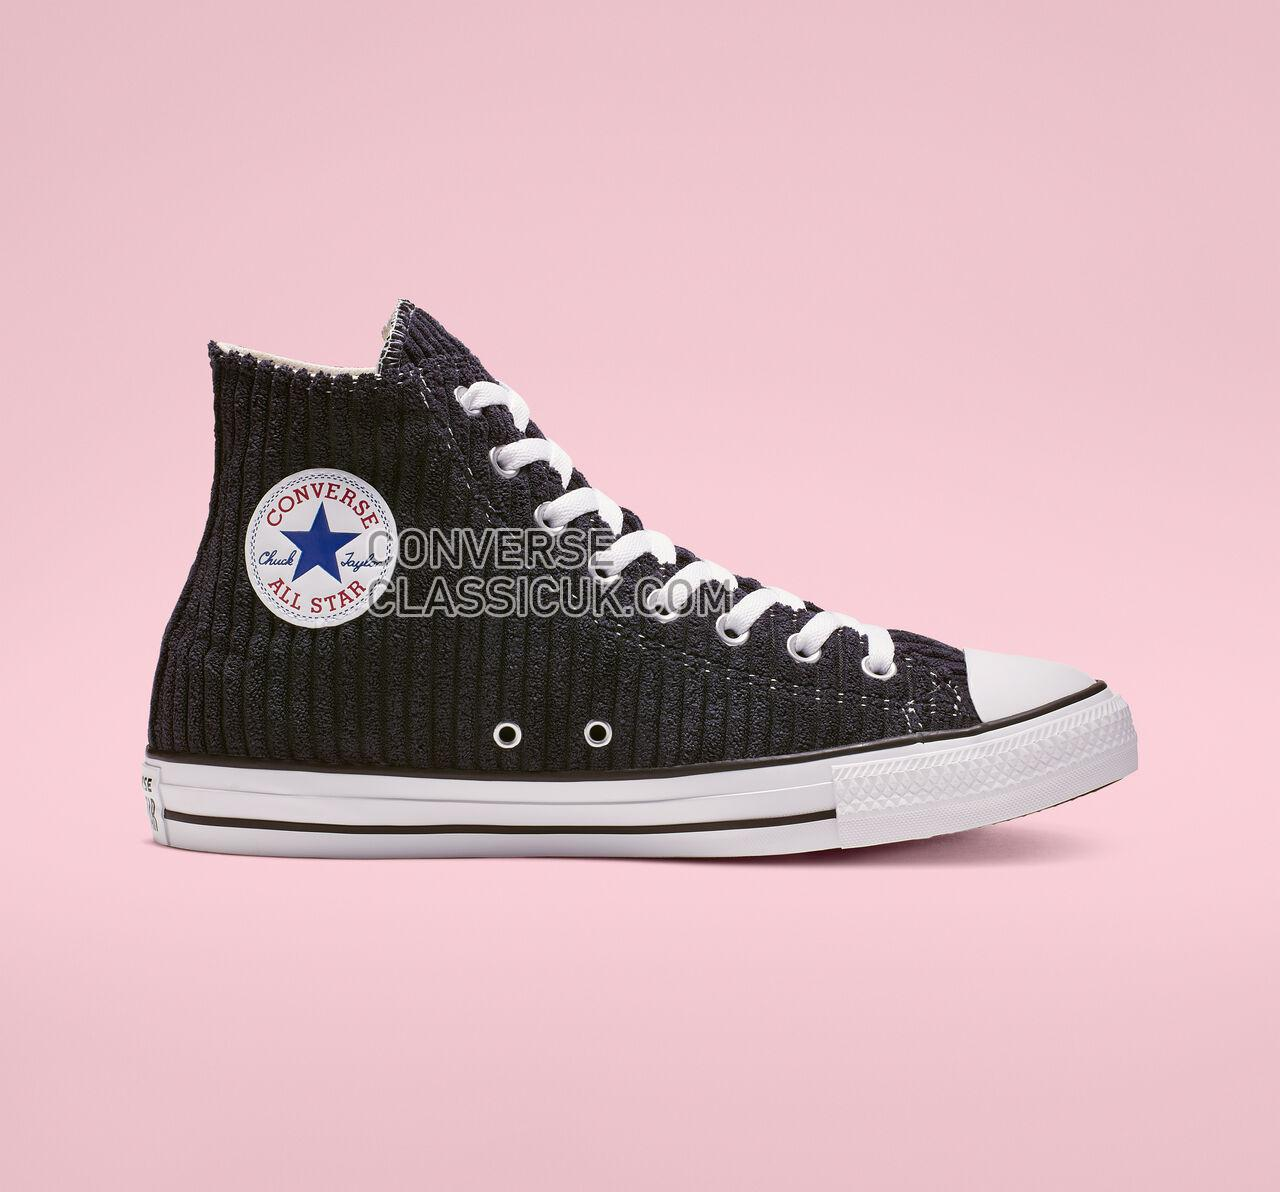 Converse Chuck Taylor All Star Wide Wale Cord High Top Mens Womens Unisex 165146F Dark Obsidian/White/Black Shoes